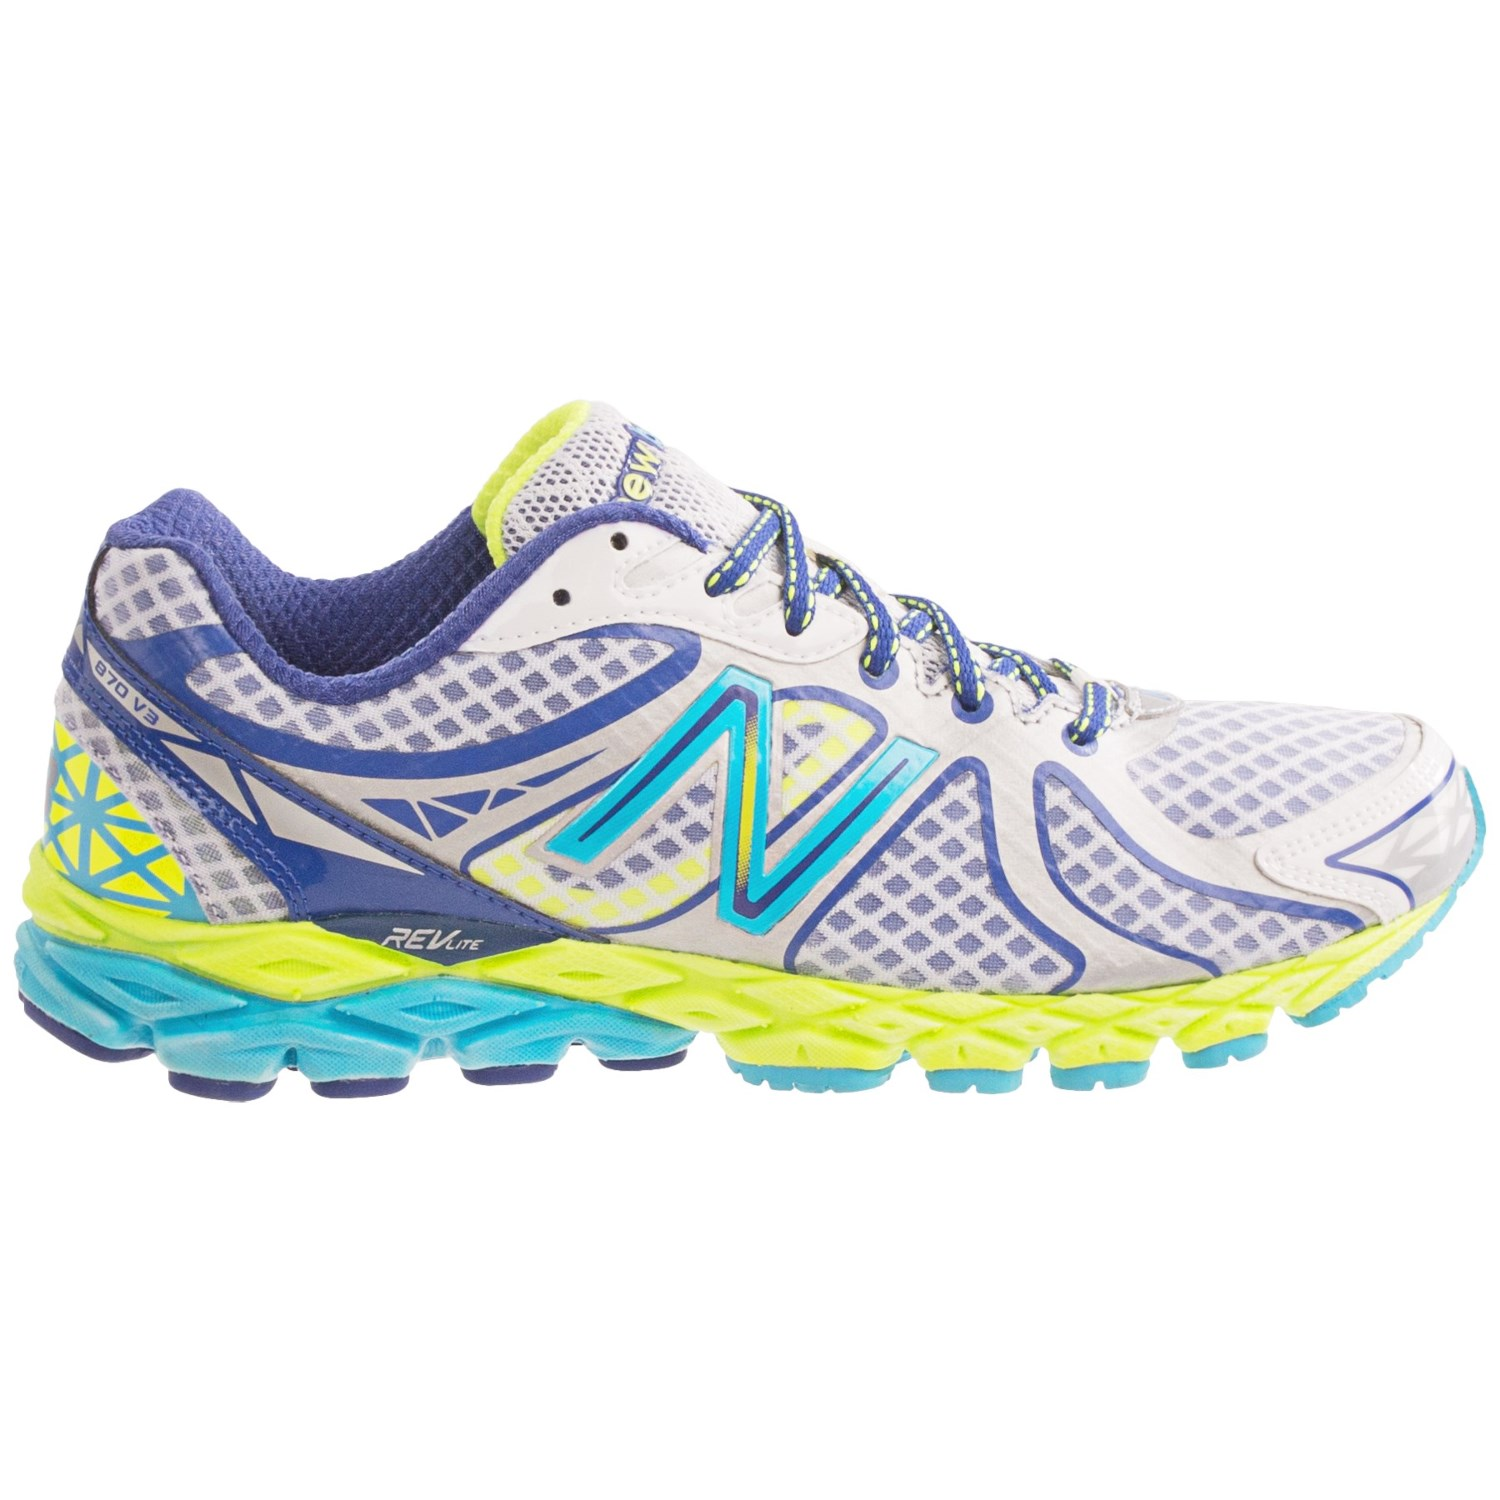 new balance 870v3 running shoes for 7522c save 27